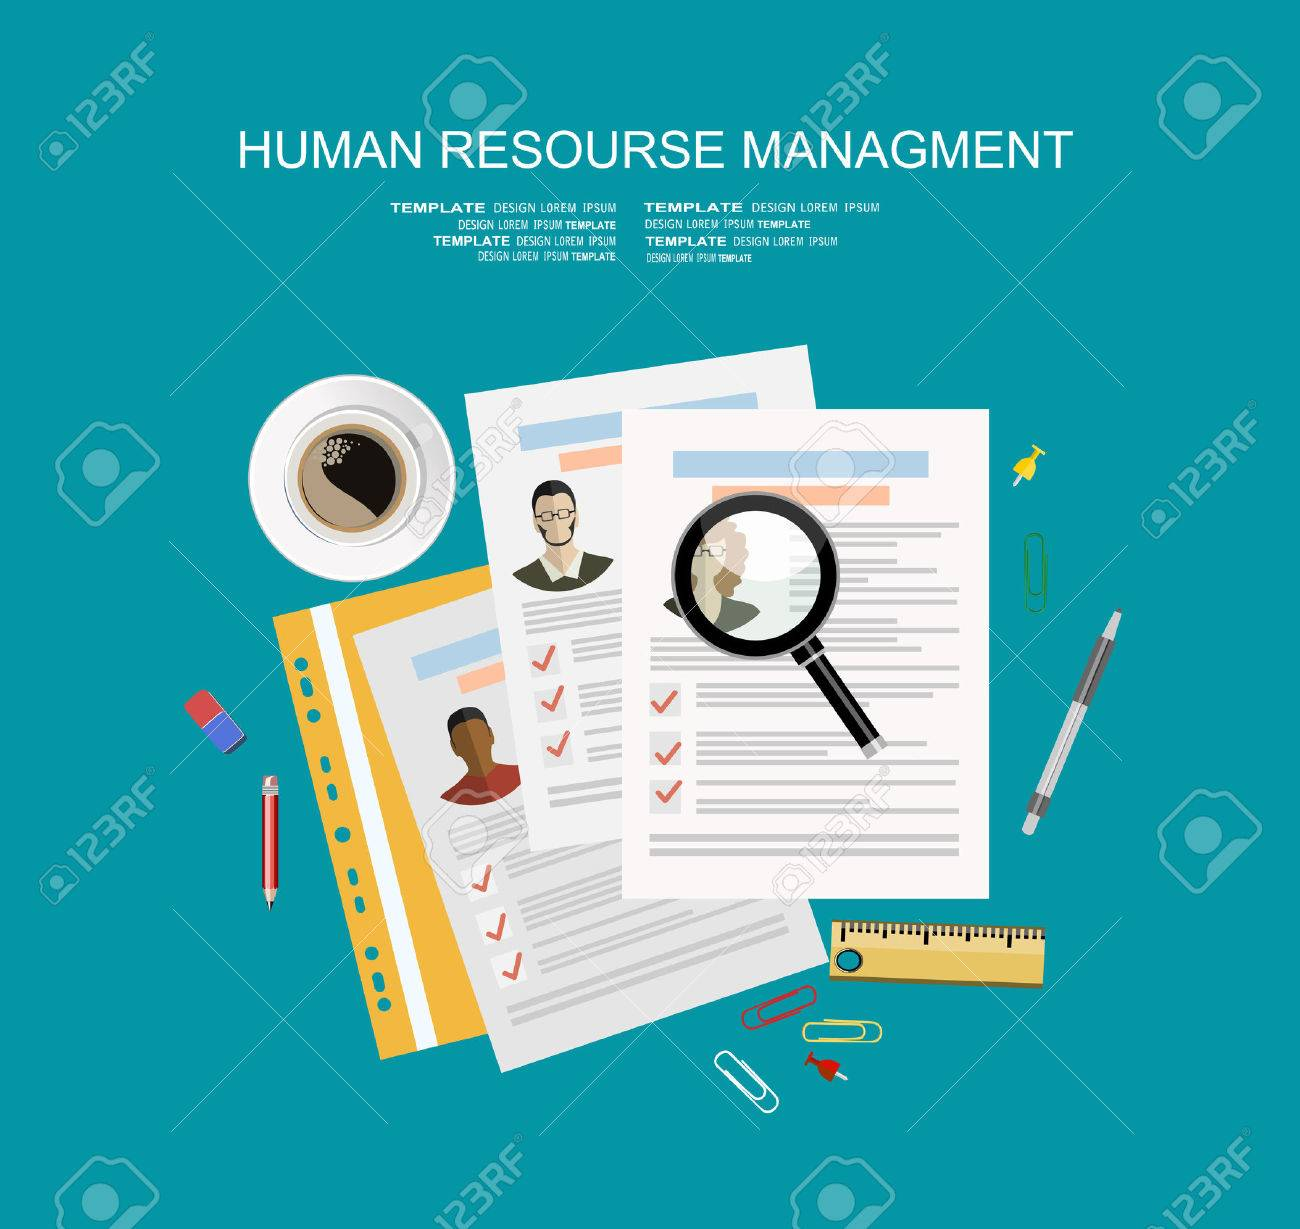 Picture of printed CVs and office accessories: pencils, eraser, magnifying glass, cup of coffee etc, flat style banner design of human resource management concept - 59408378